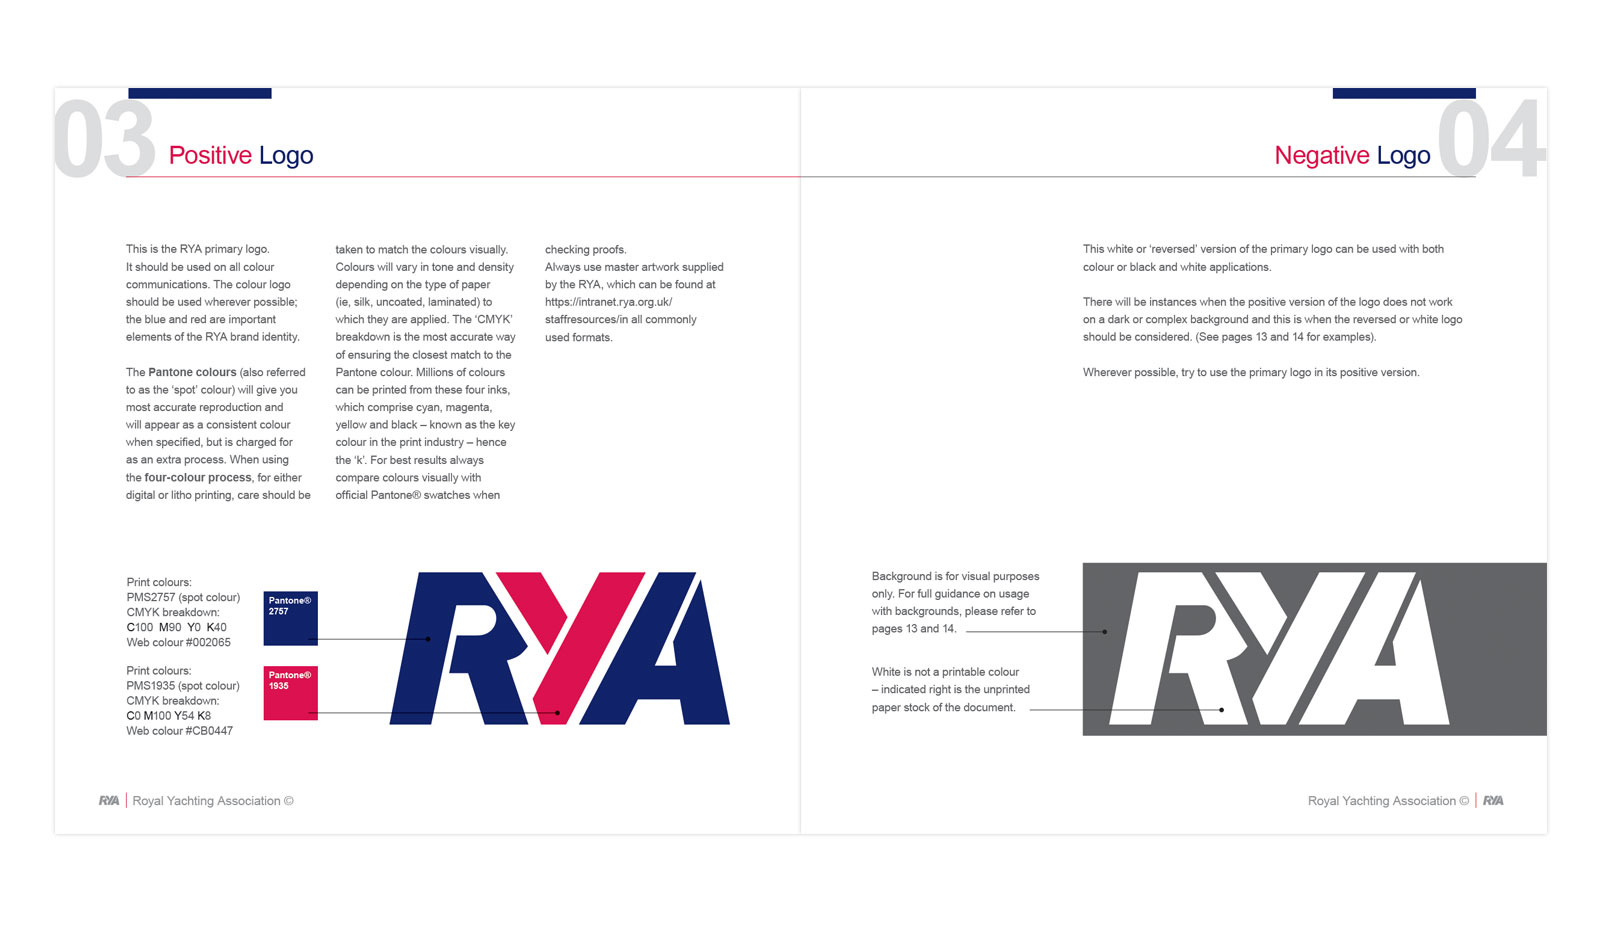 RYA Brand guidelines design